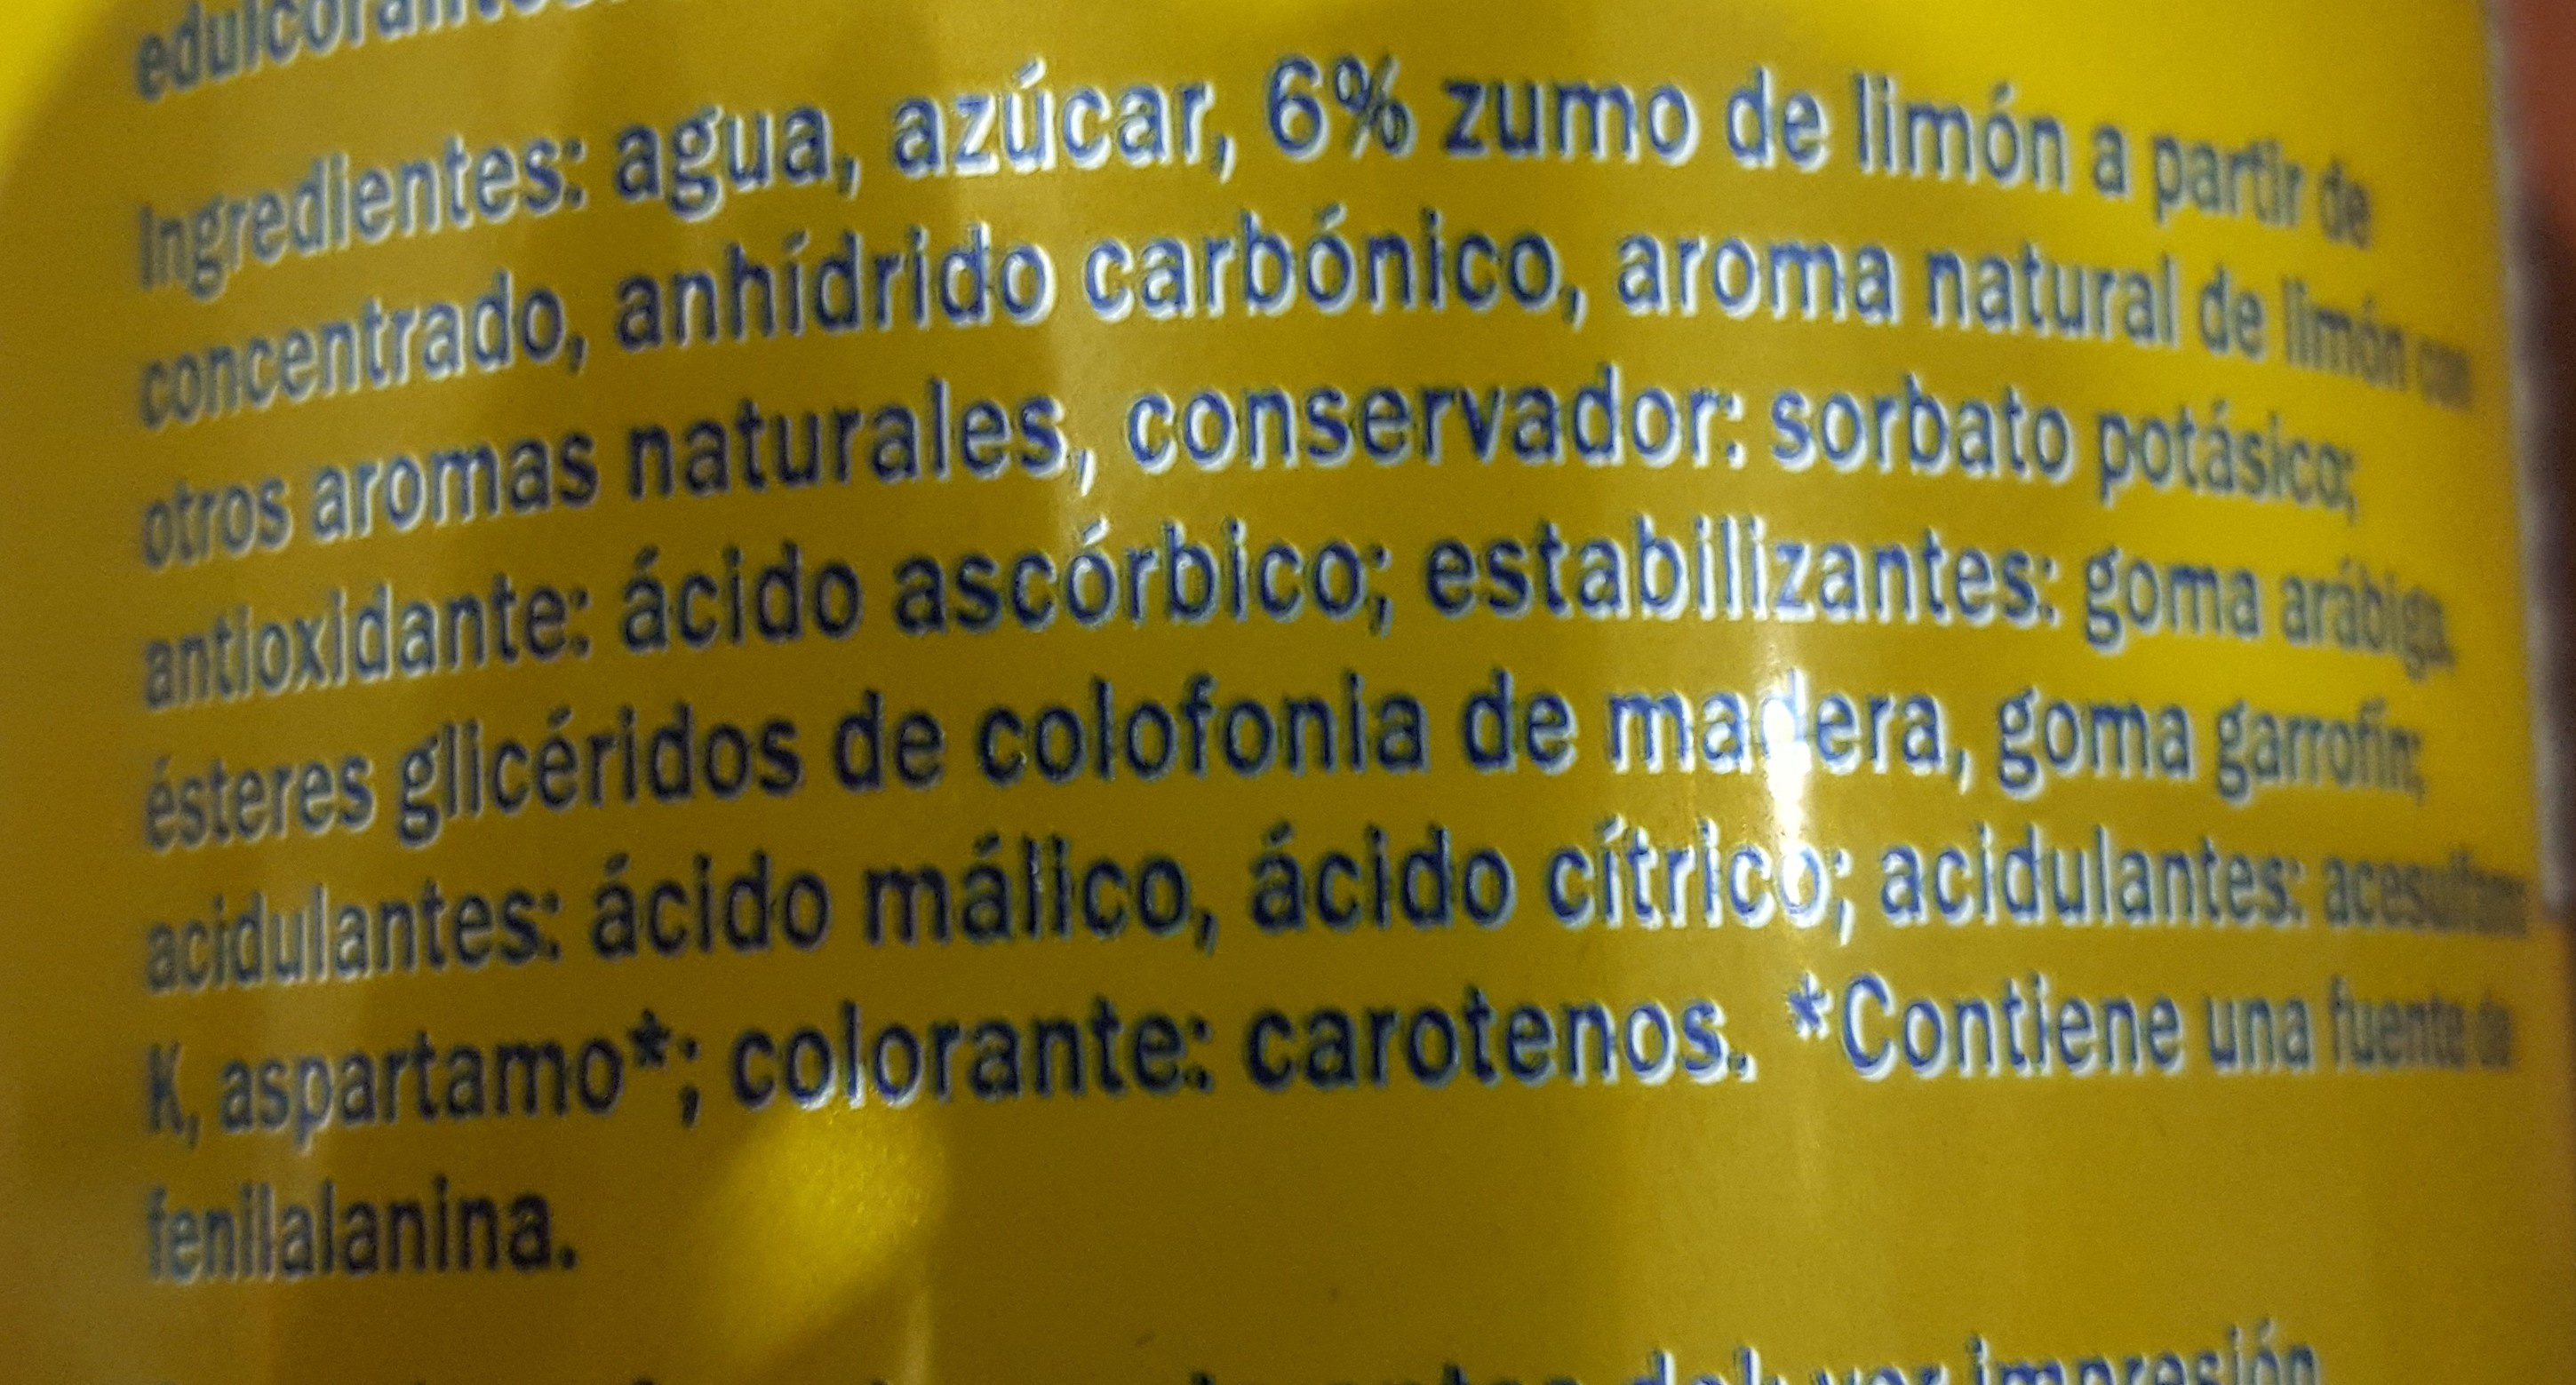 Lemon drink - Ingredients